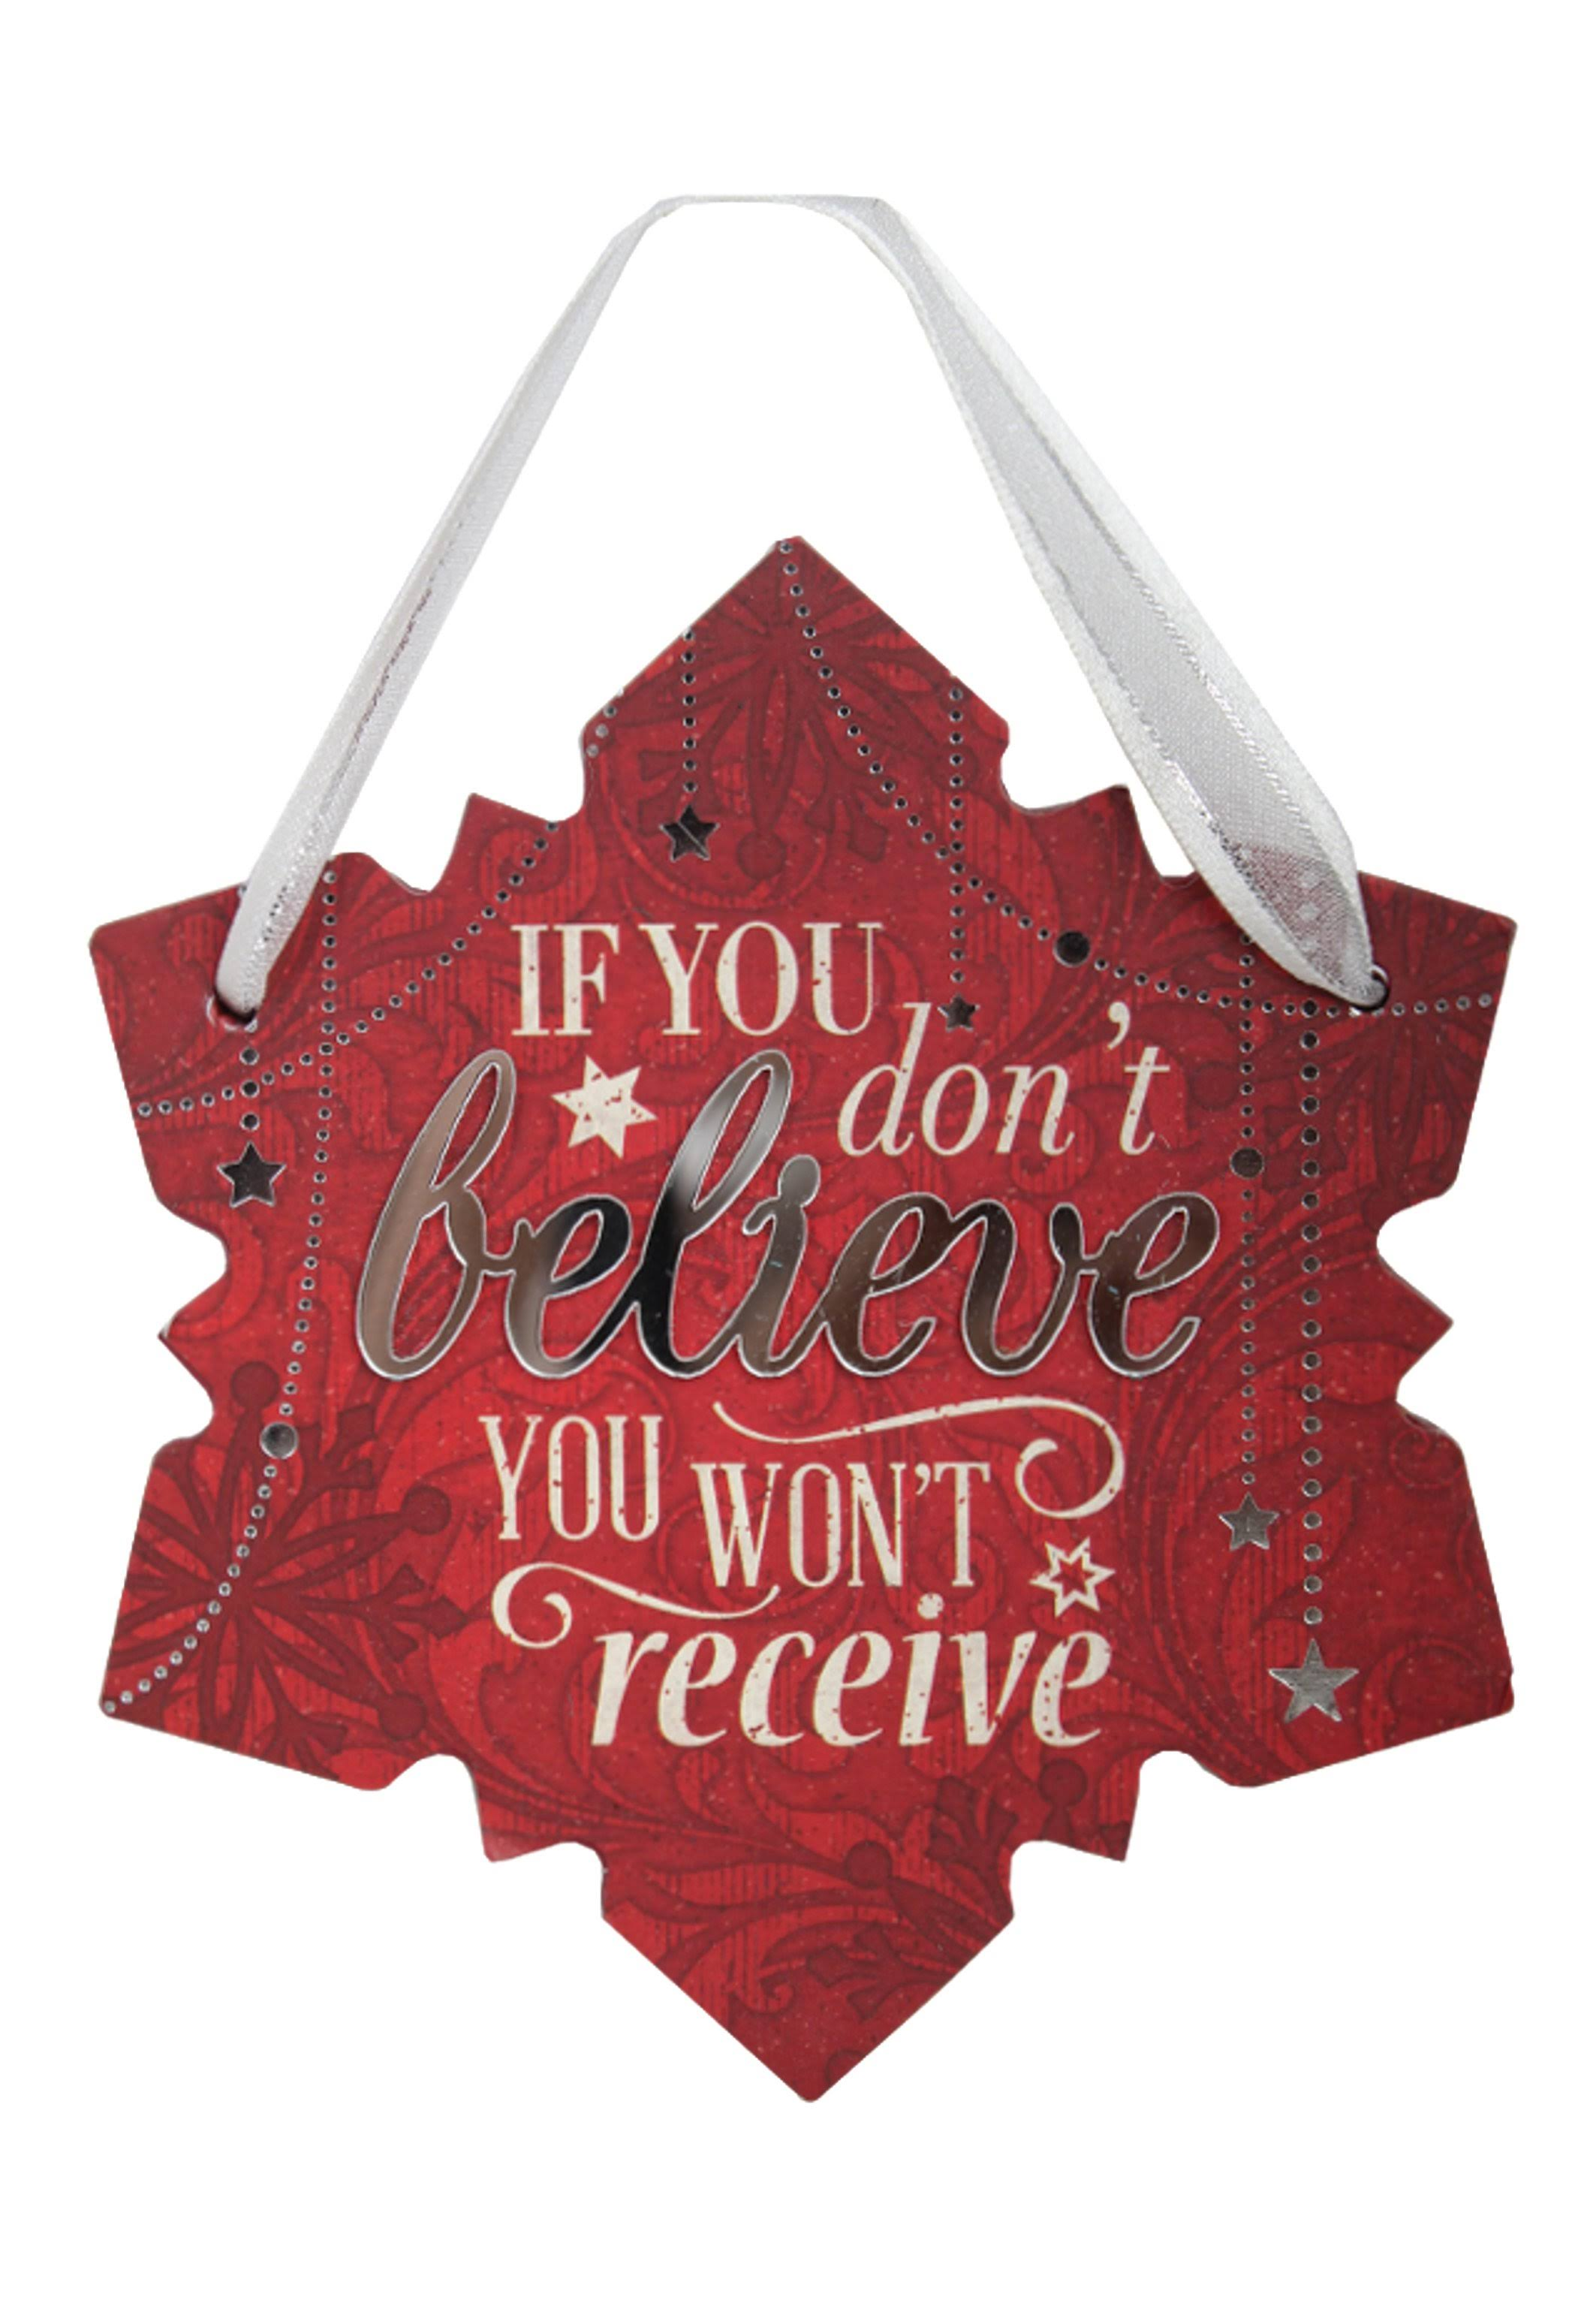 Festive Word Hanging Ornament - If You Don't Believe You Won't